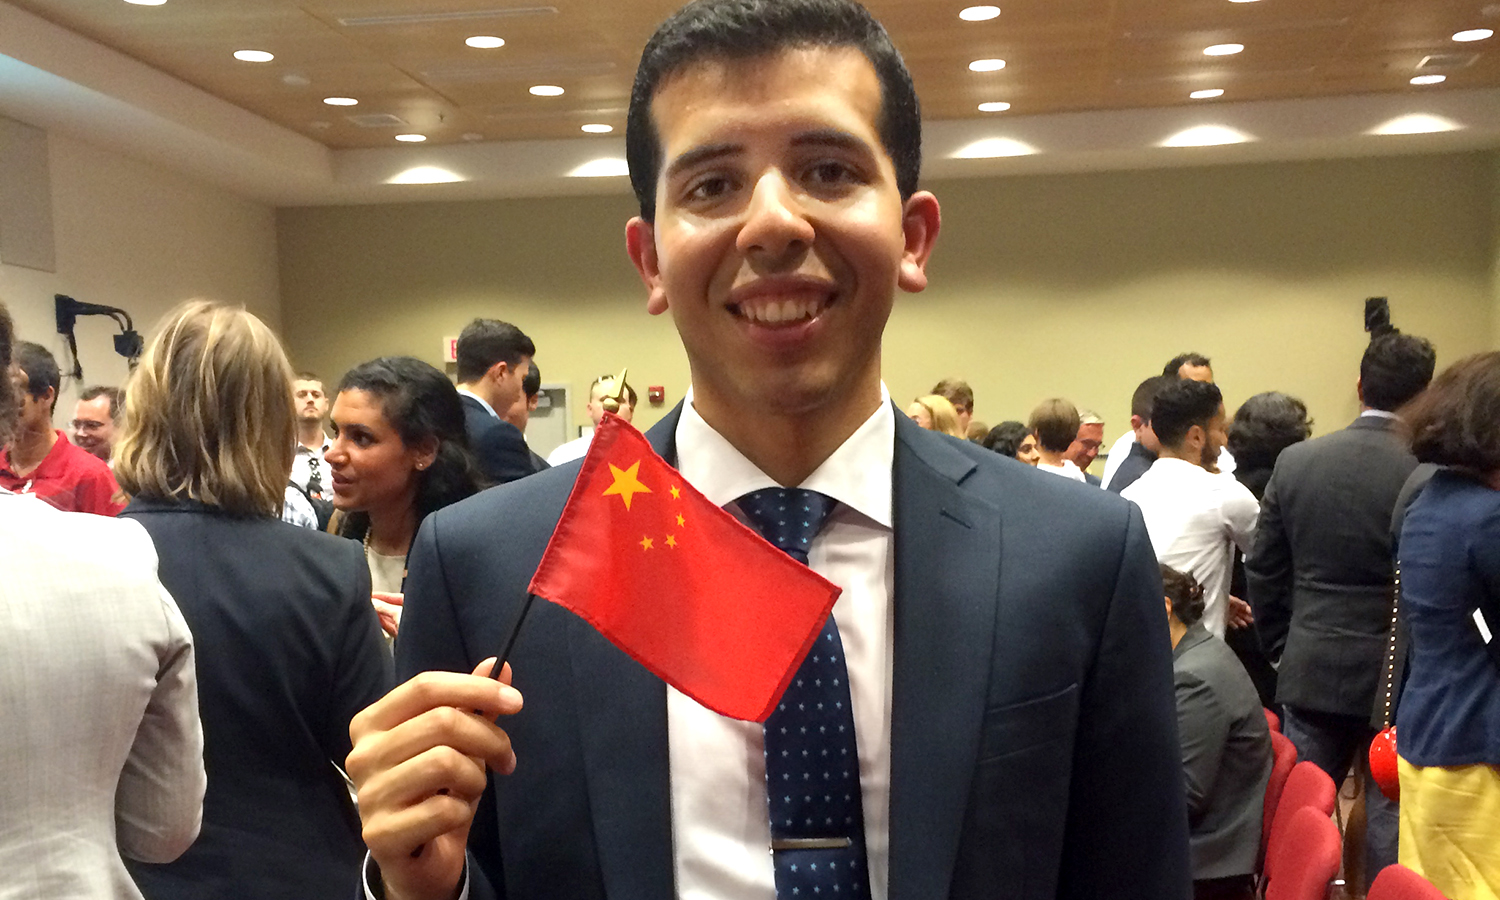 David Luna '14 participates in a flag ceremony in Washington, D.C., before leaving for Beijing, China for a consular tour and other diplomatic training. Luna is set to work at the U.S. Embassy in Beijing, where he interned in 2015 as a Rangel Fellow recipient.